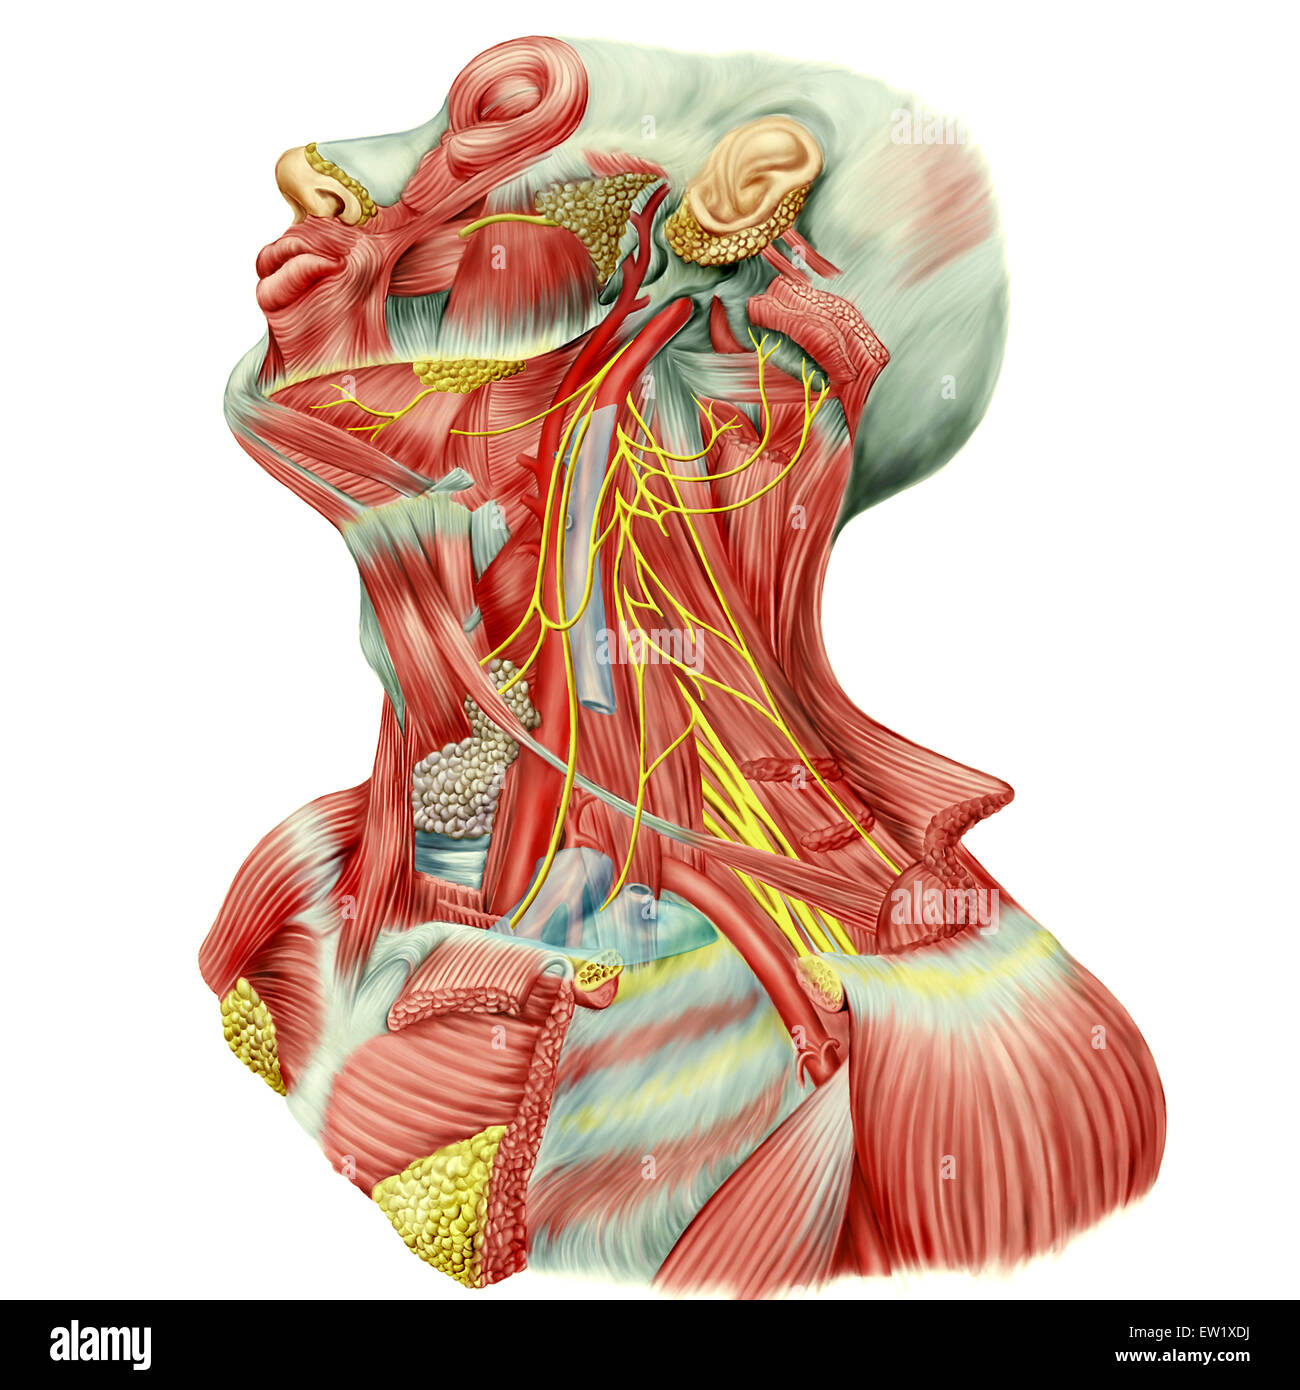 Detailed dissection view of human neck showing ansa cervicalis (Latin), superior root or descending hypoglossal, - Stock Image